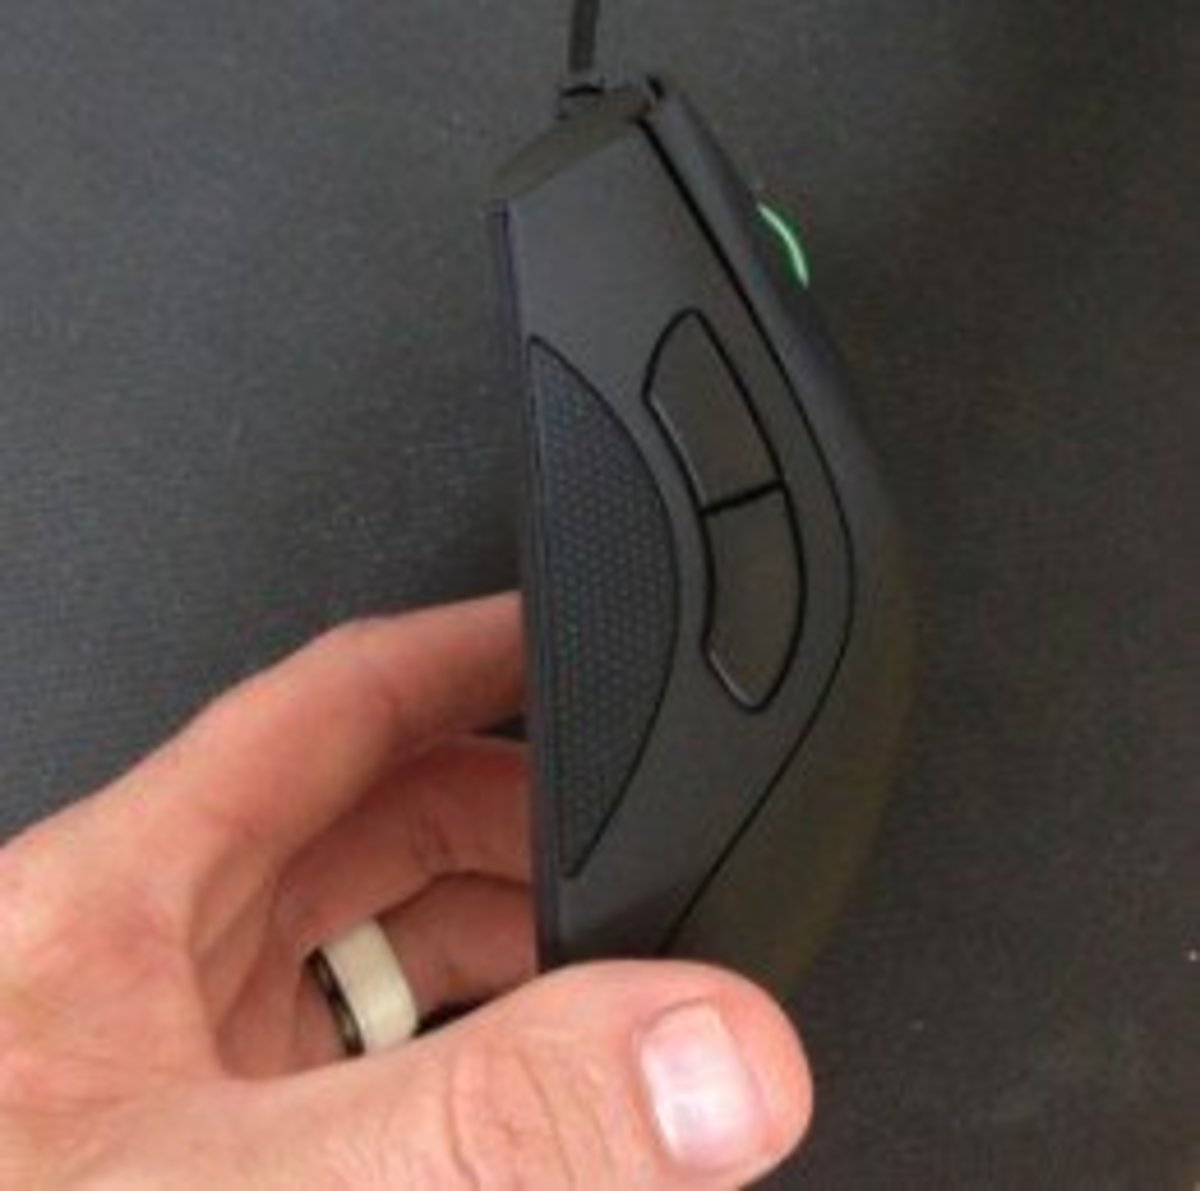 Here's a picture of me holding the Razer DeathAdder. As you can see the grips avoid that shiny slipper plastic that plagued versions prior to 2013.